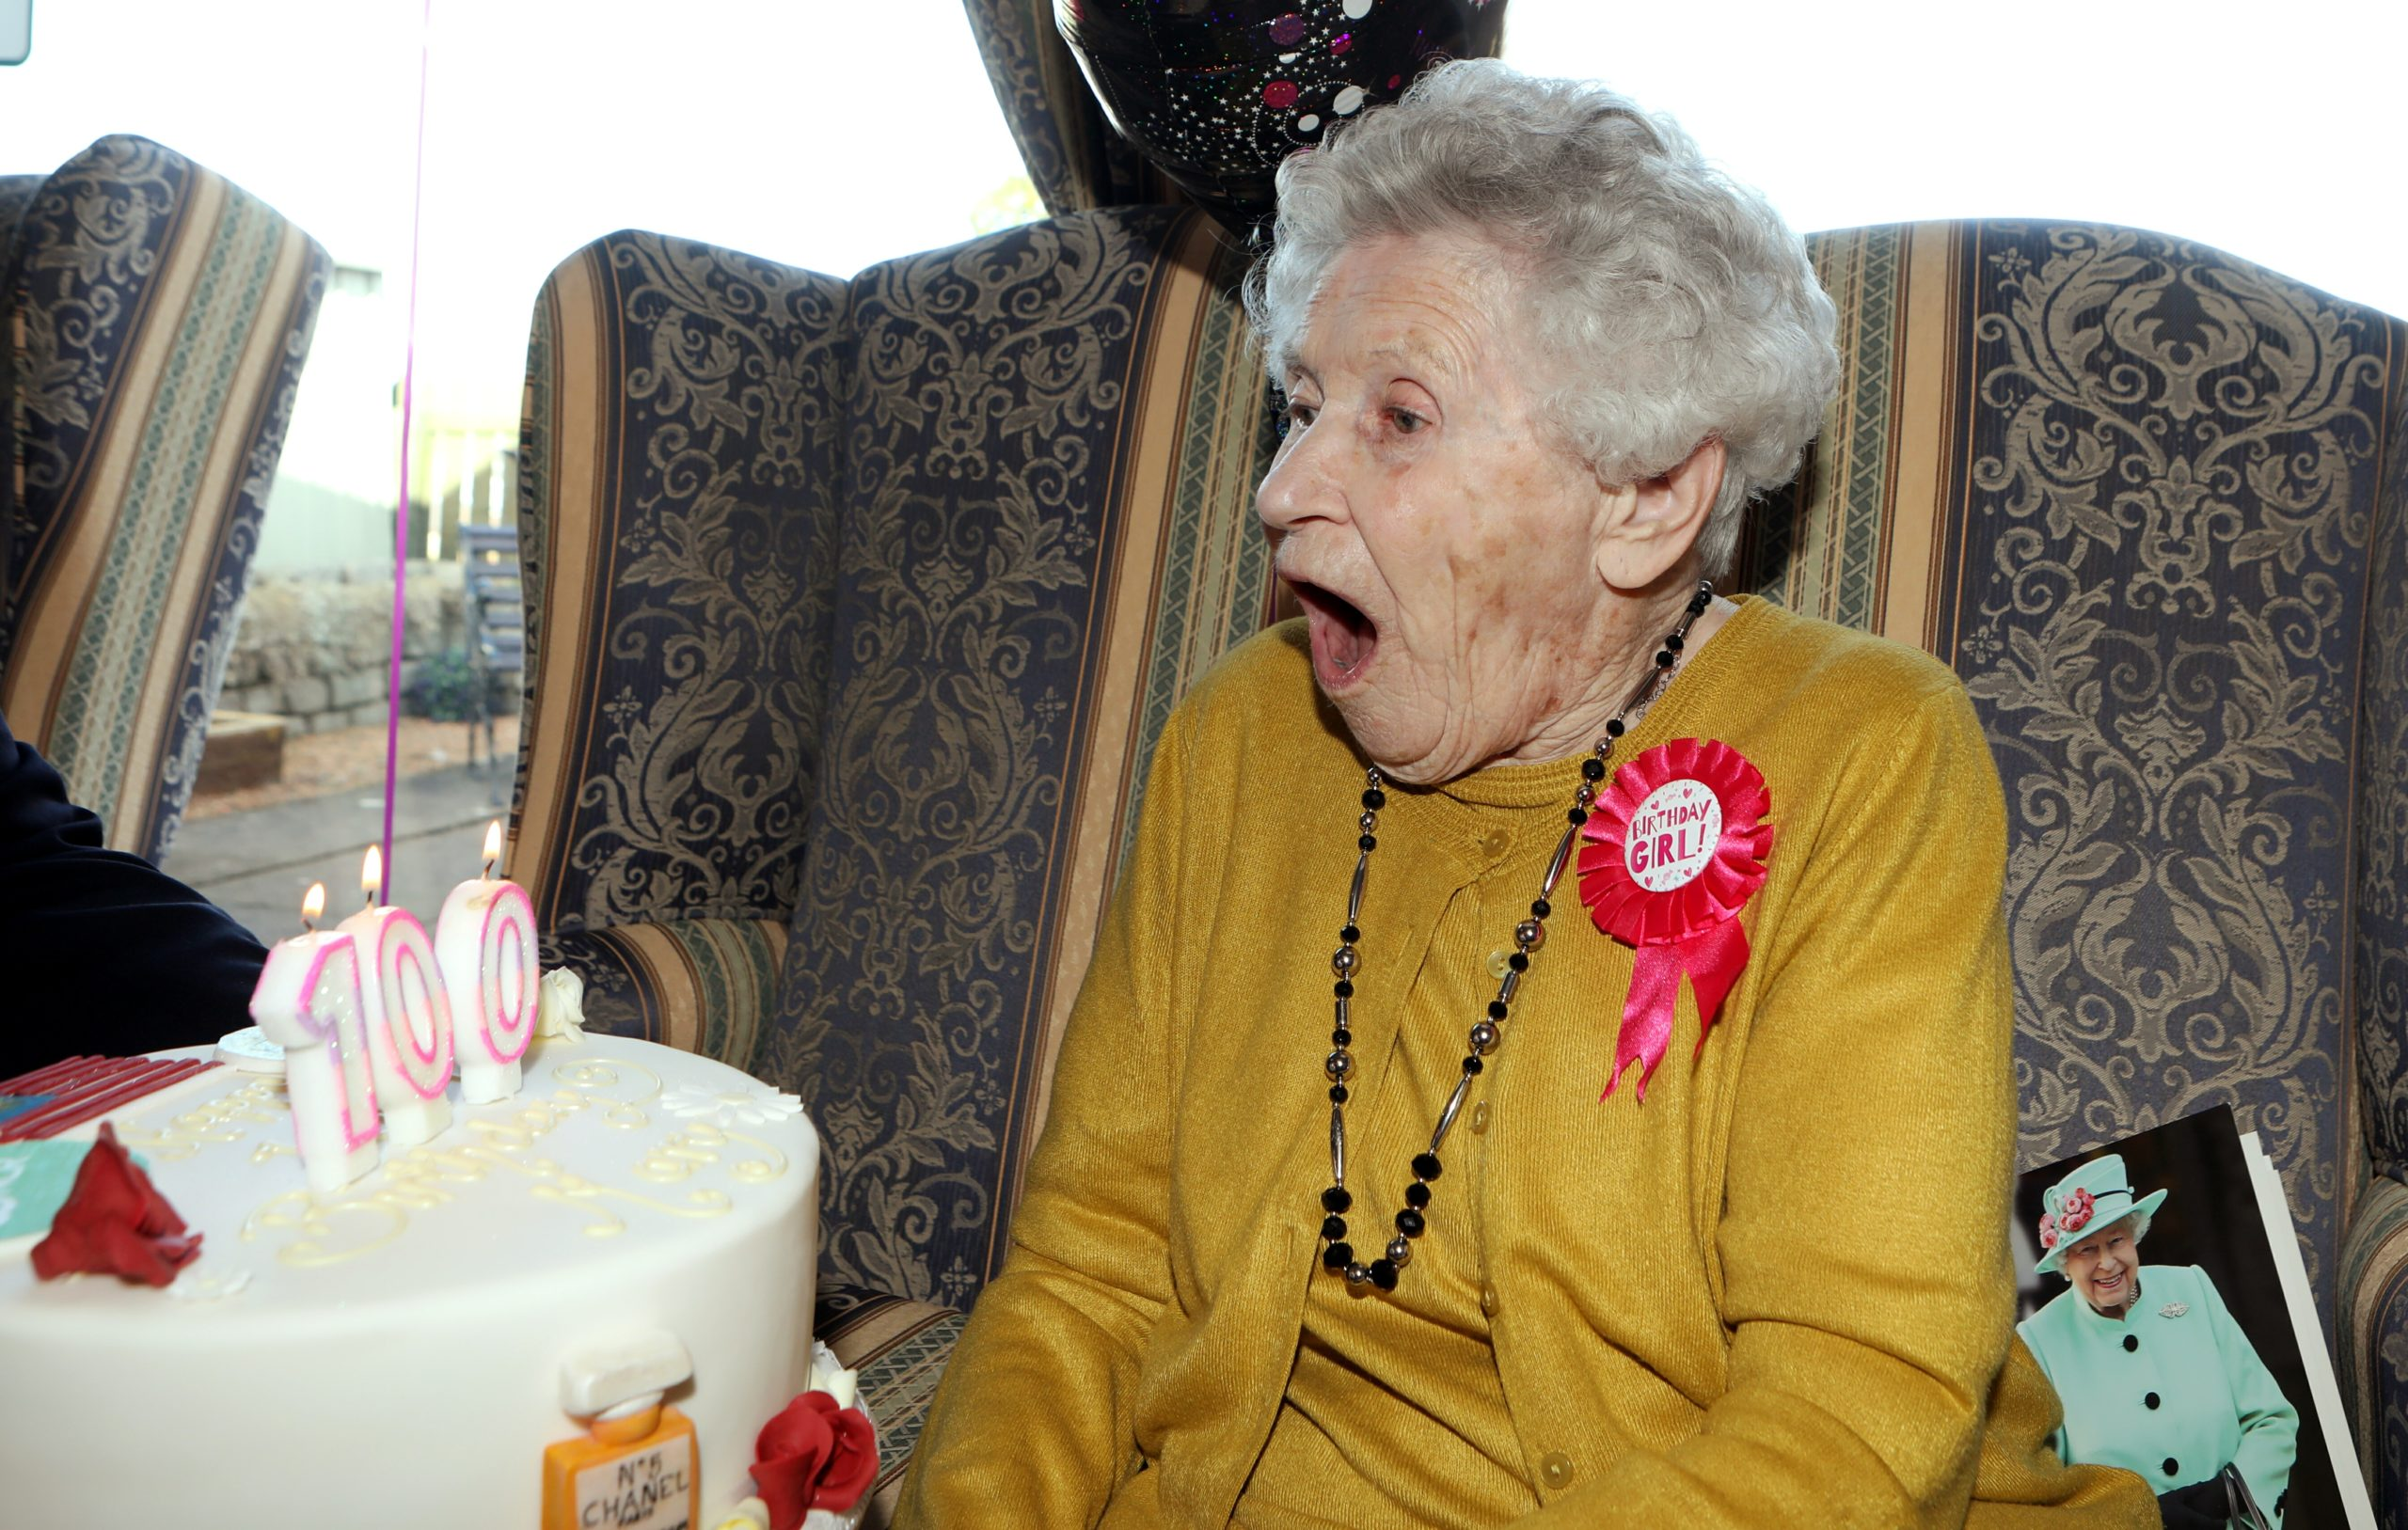 Mary Geekie from Forfar celebrated her 100th birthday at Windyedge Cottage Care Home.